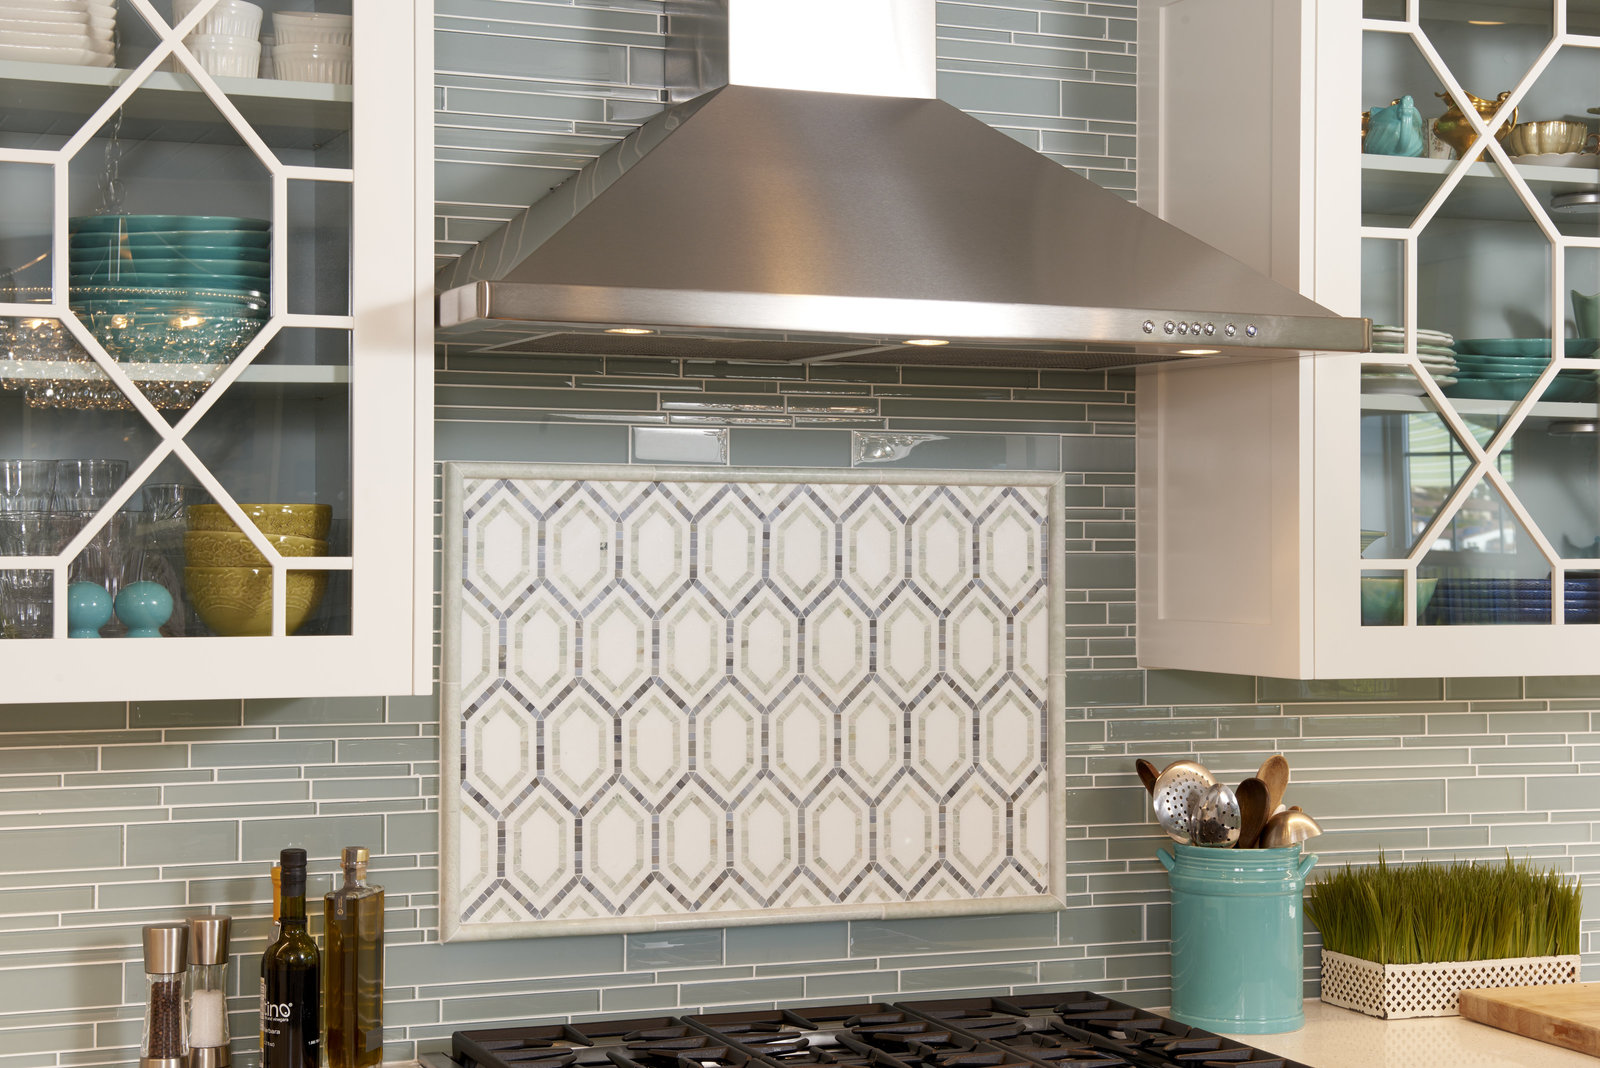 Beach House Kitchen Range Backsplash Design